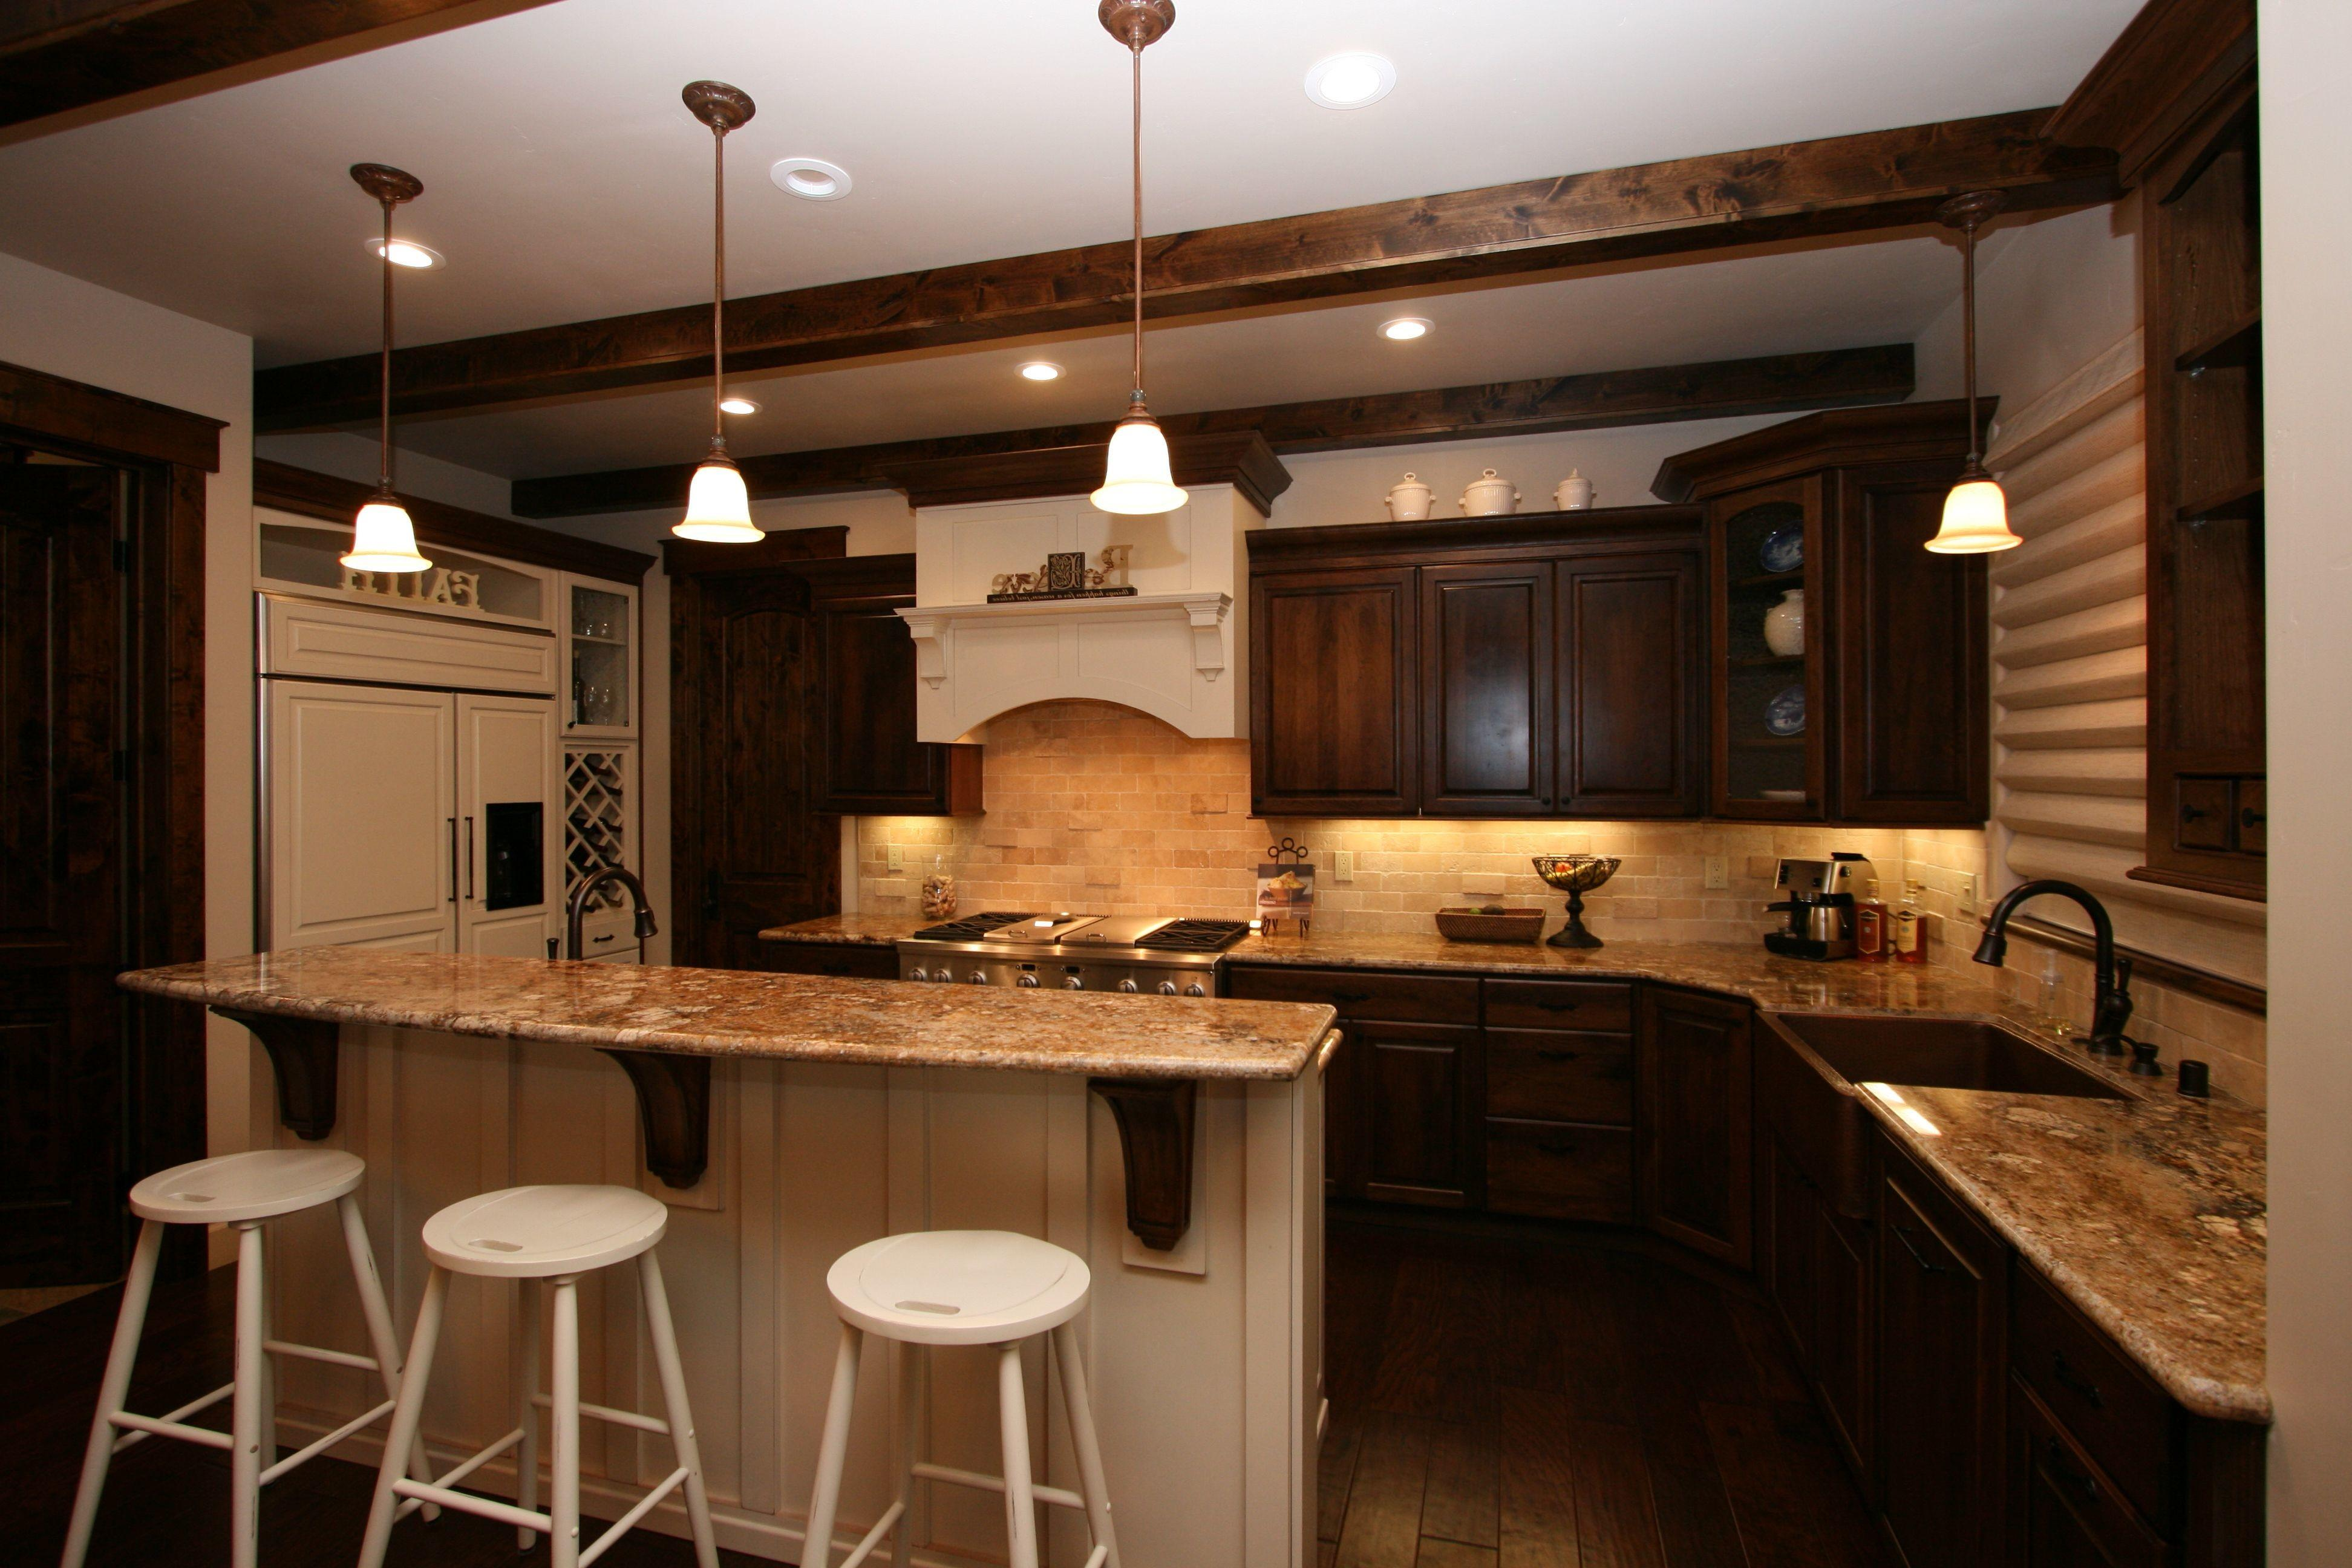 Kitchen Counter Decor Ideas Make Your Cooking Space